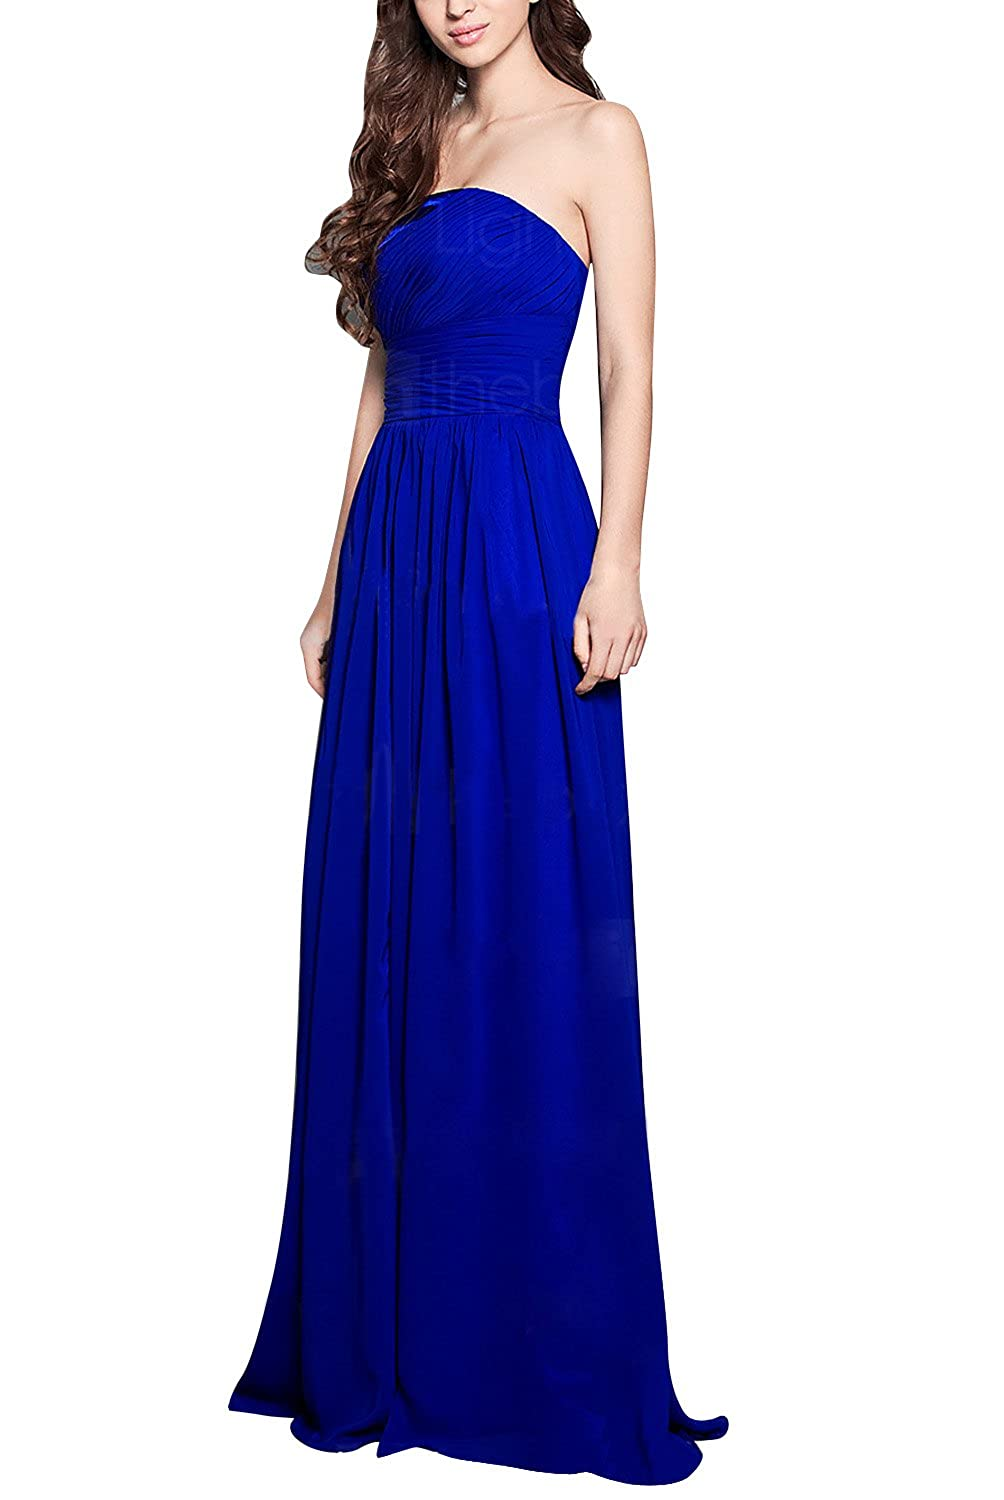 Wedtrend women's Bridesmaid Prom Dresses Long Chiffon Formal Evening Party Cocktail Dress